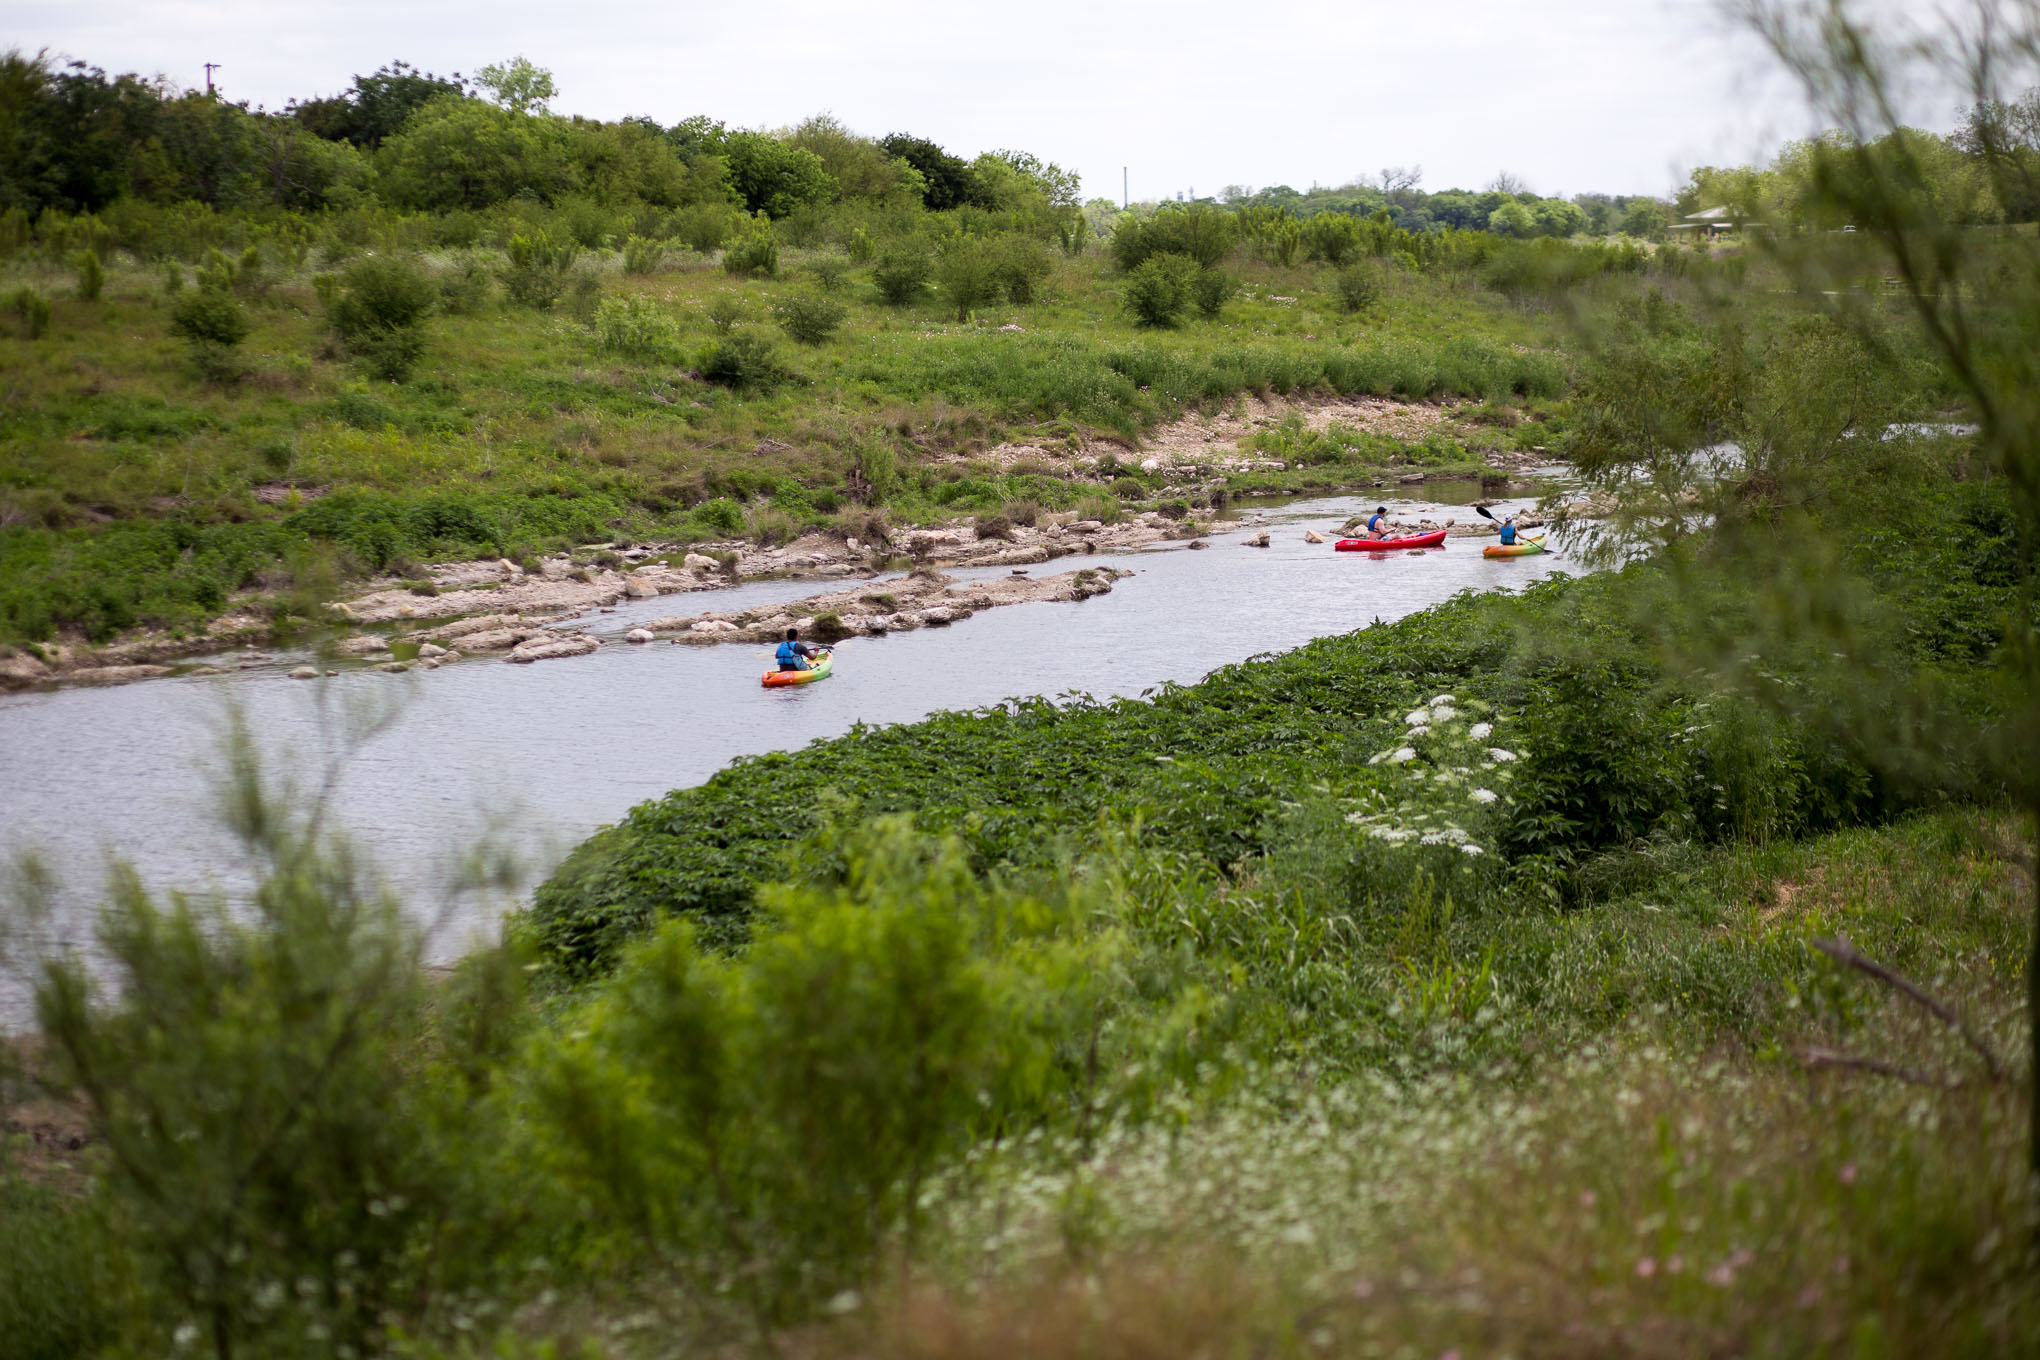 Kayakers paddle down the San Antonio River. Photo by Scott Ball.